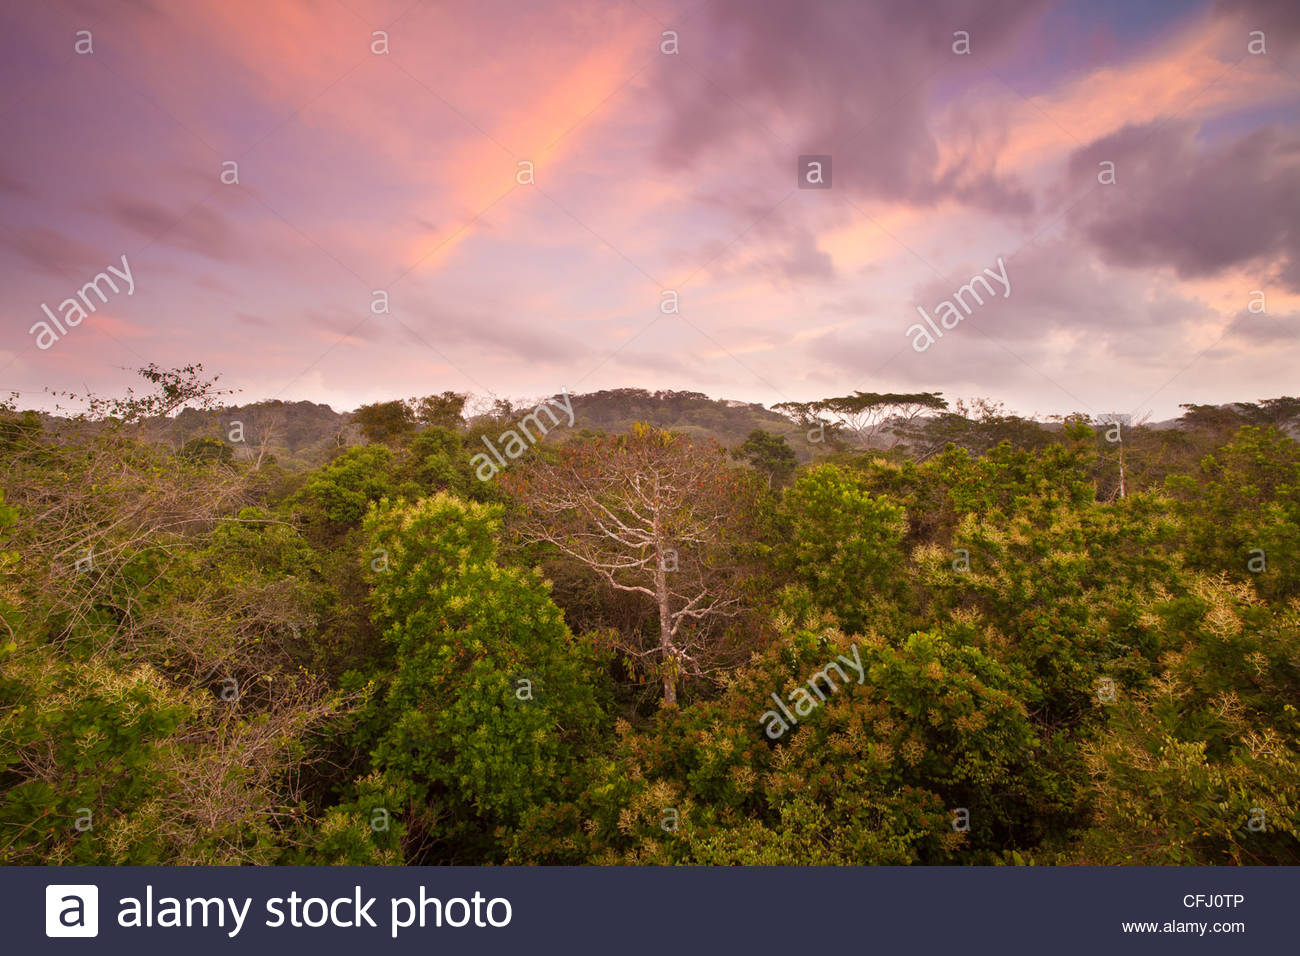 Dawn in the rainforest of Soberania national park, Republic of Panama. - Stock Image